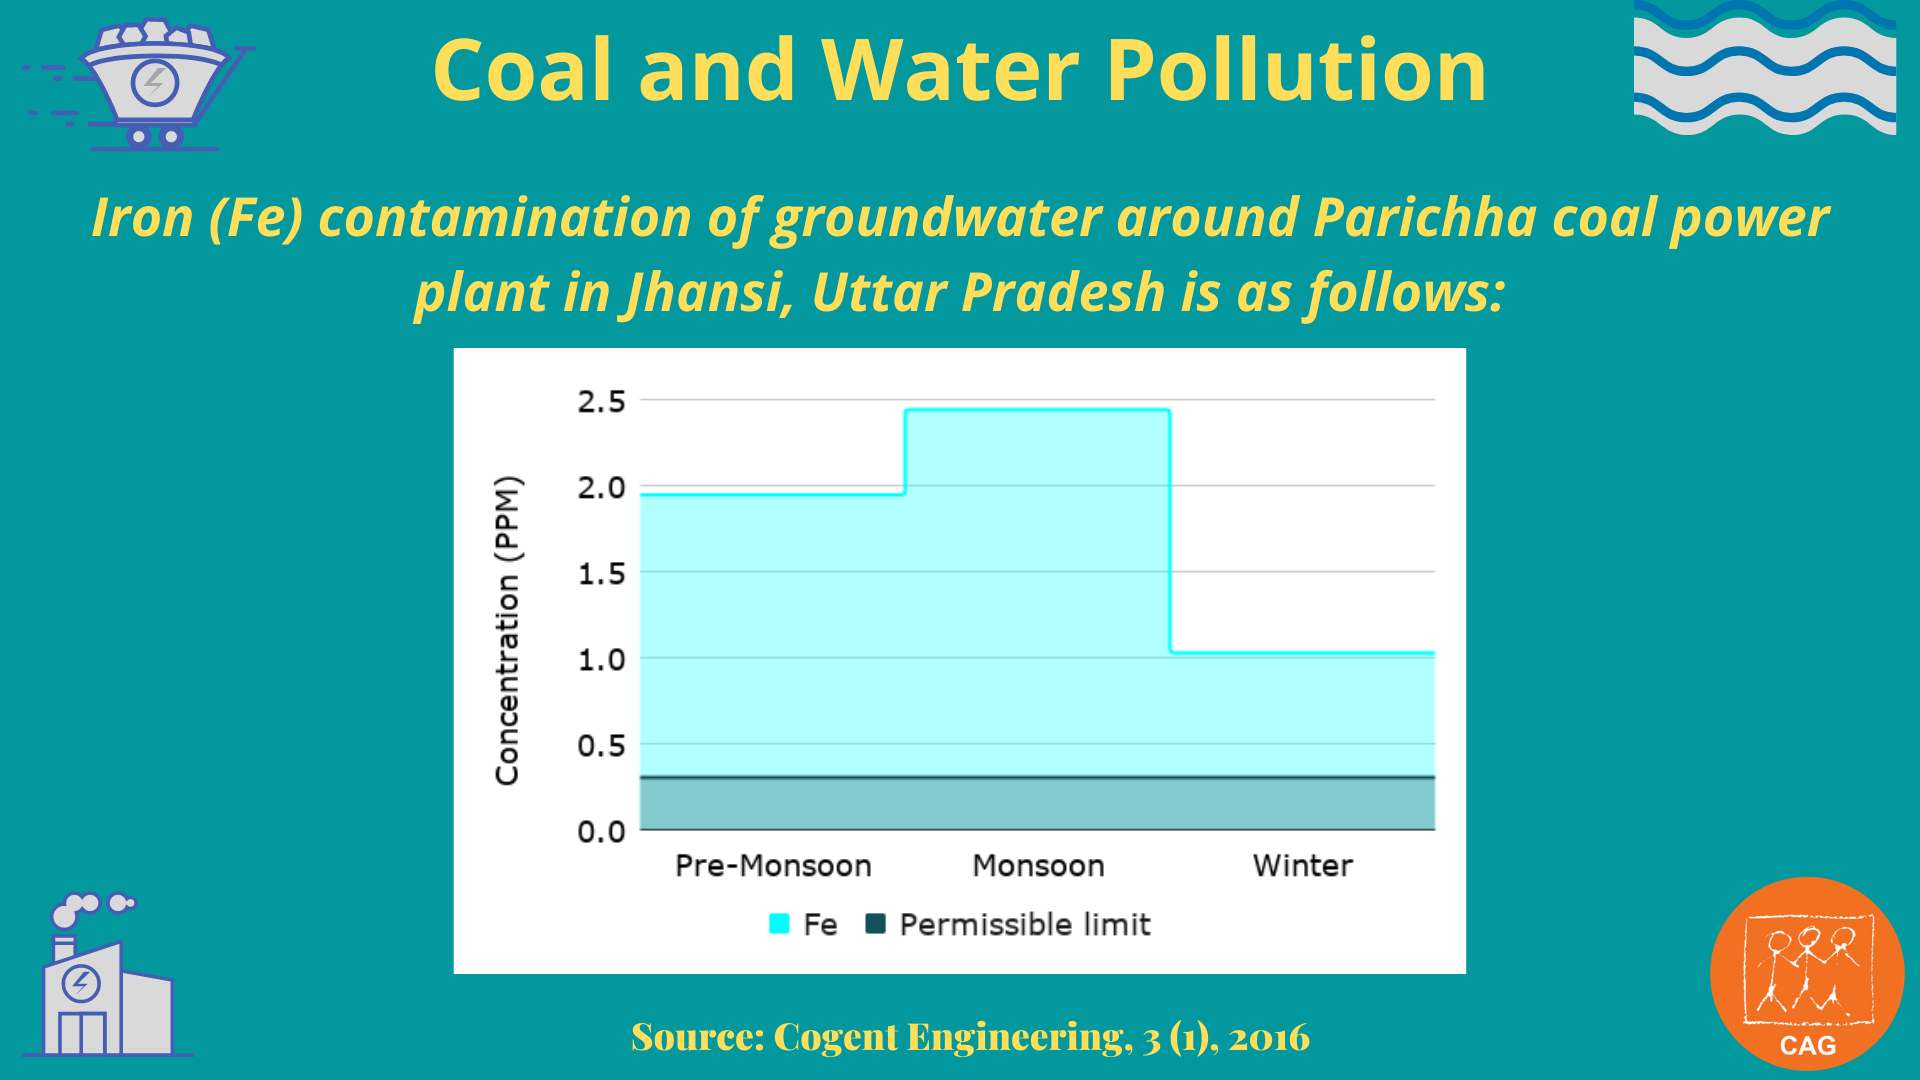 Coal and water pollution 7